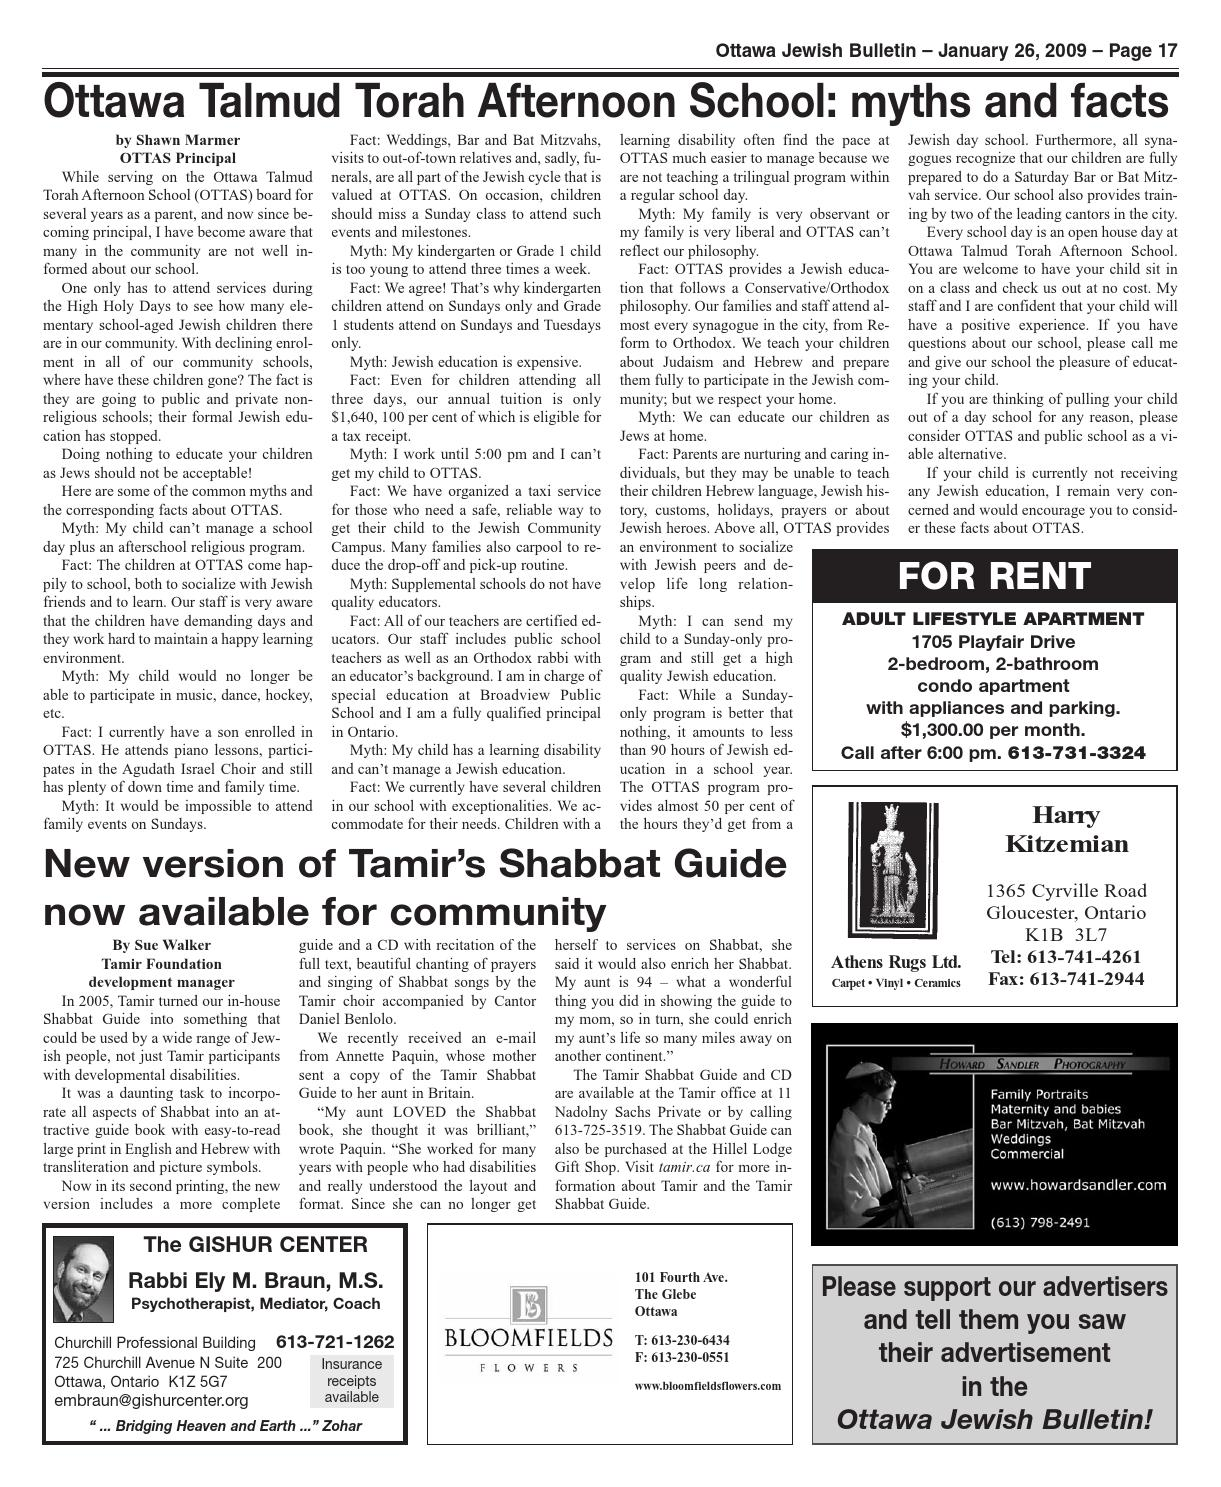 Ottawa Jewish Bulletin 2009 01 26 Inaccessible By The